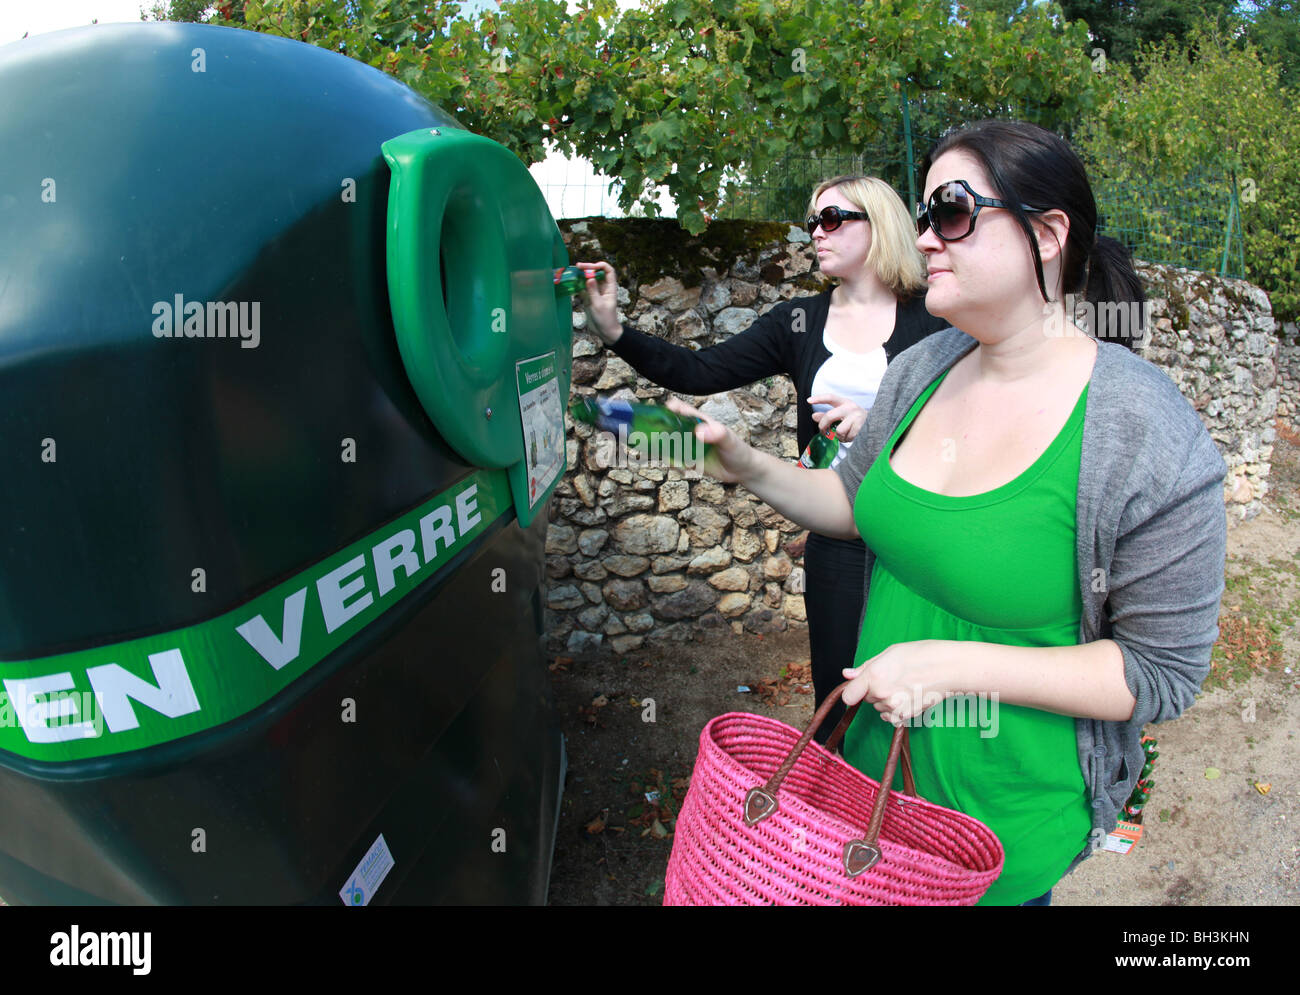 People recycling glass bottles, France. Stock Photo